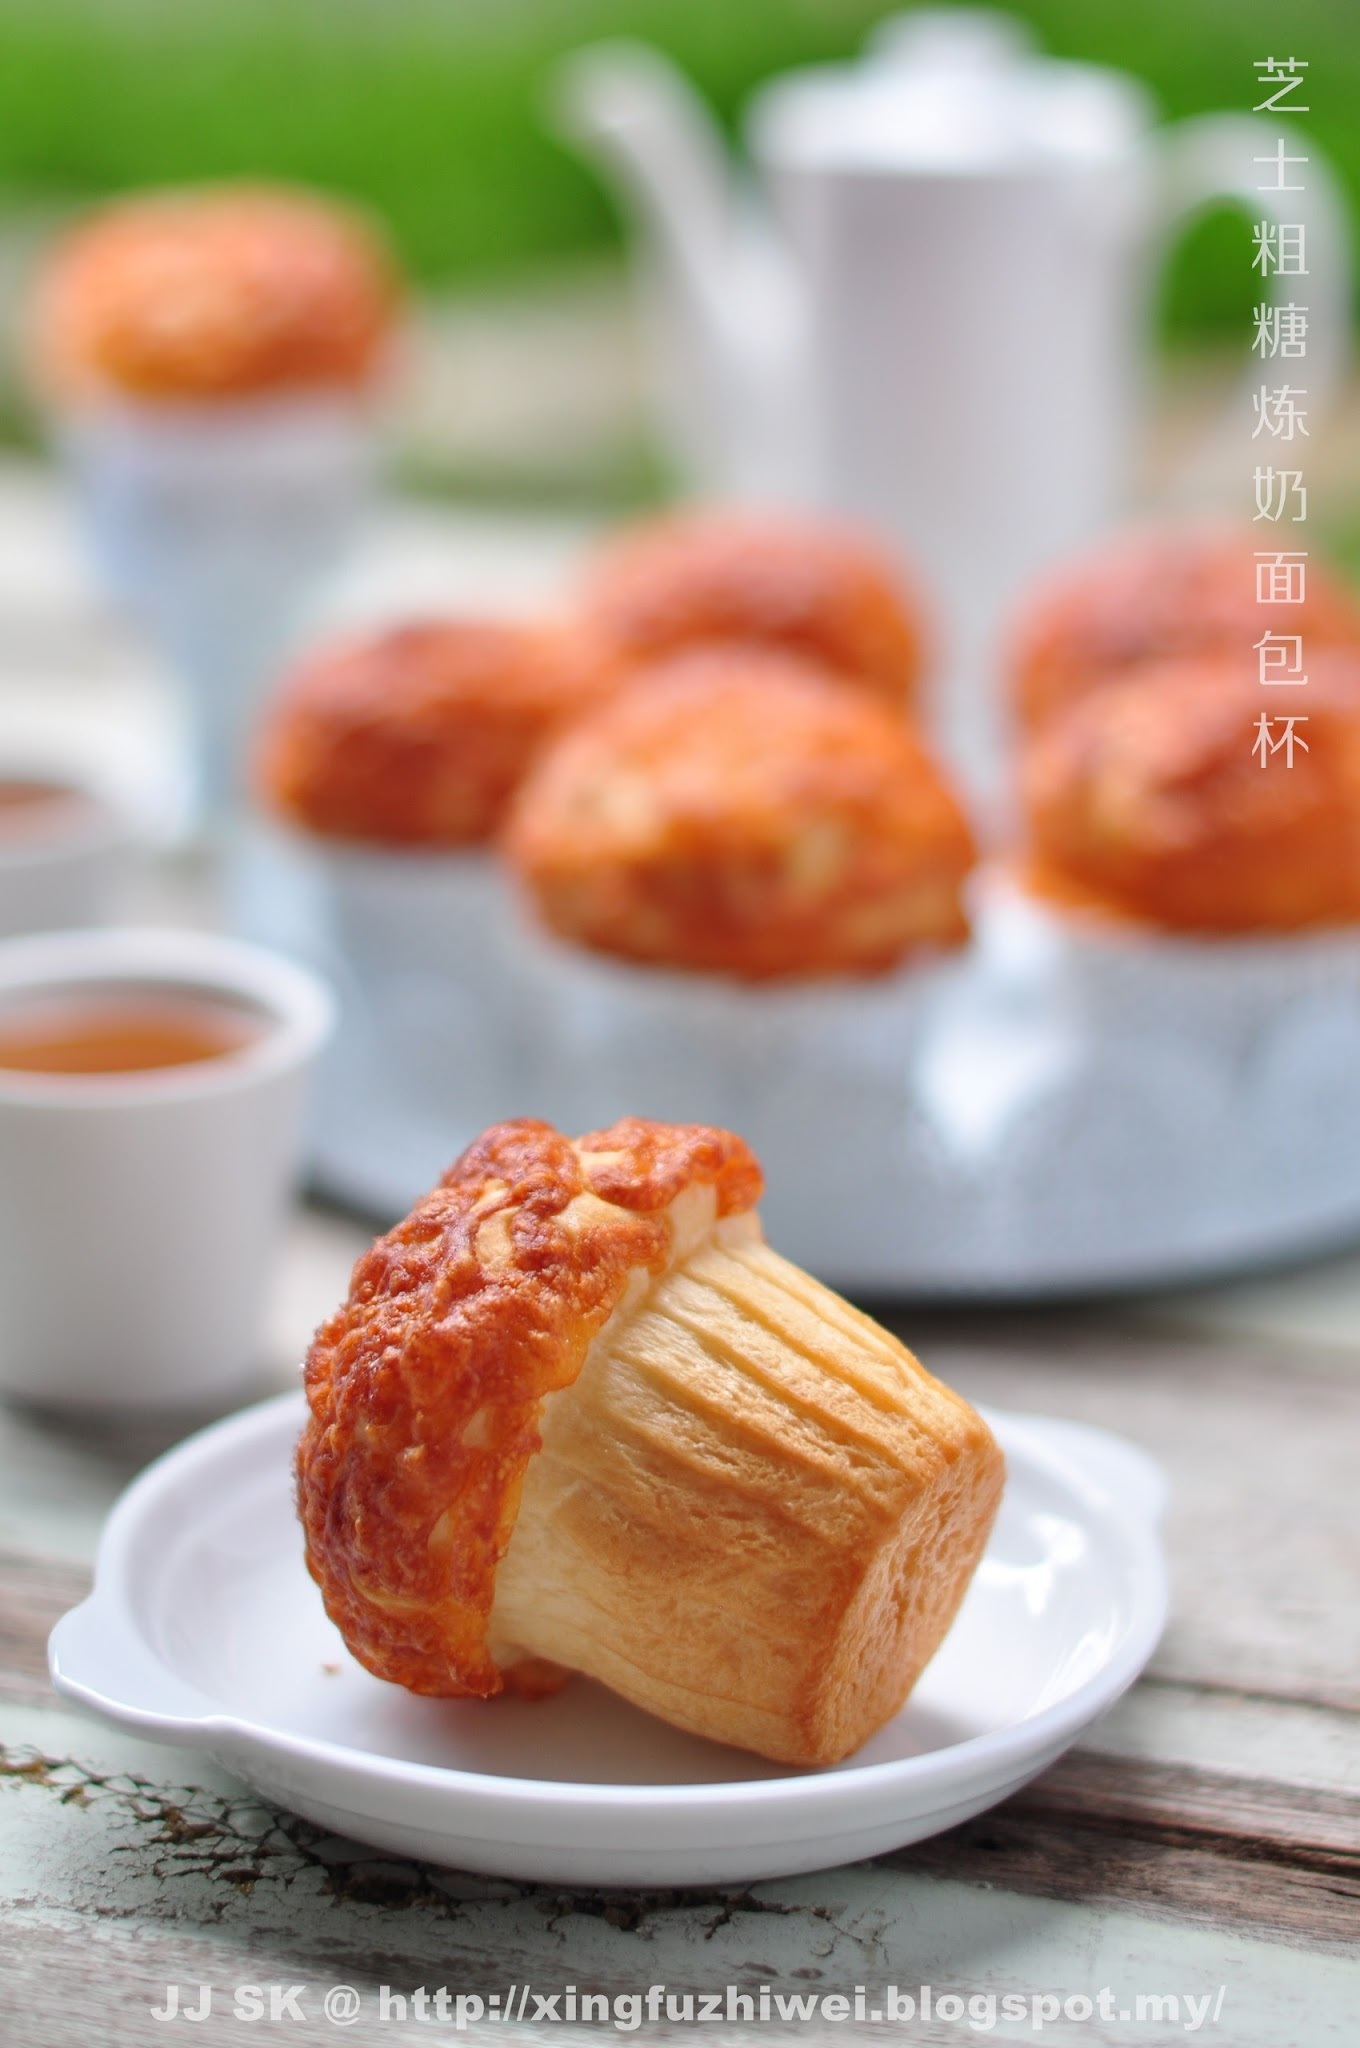 粗糖芝士炼奶面包杯 (一次发酵法) Sugar Cheese Sweetened Condensed Milk Bread (Just Once Fermentation)